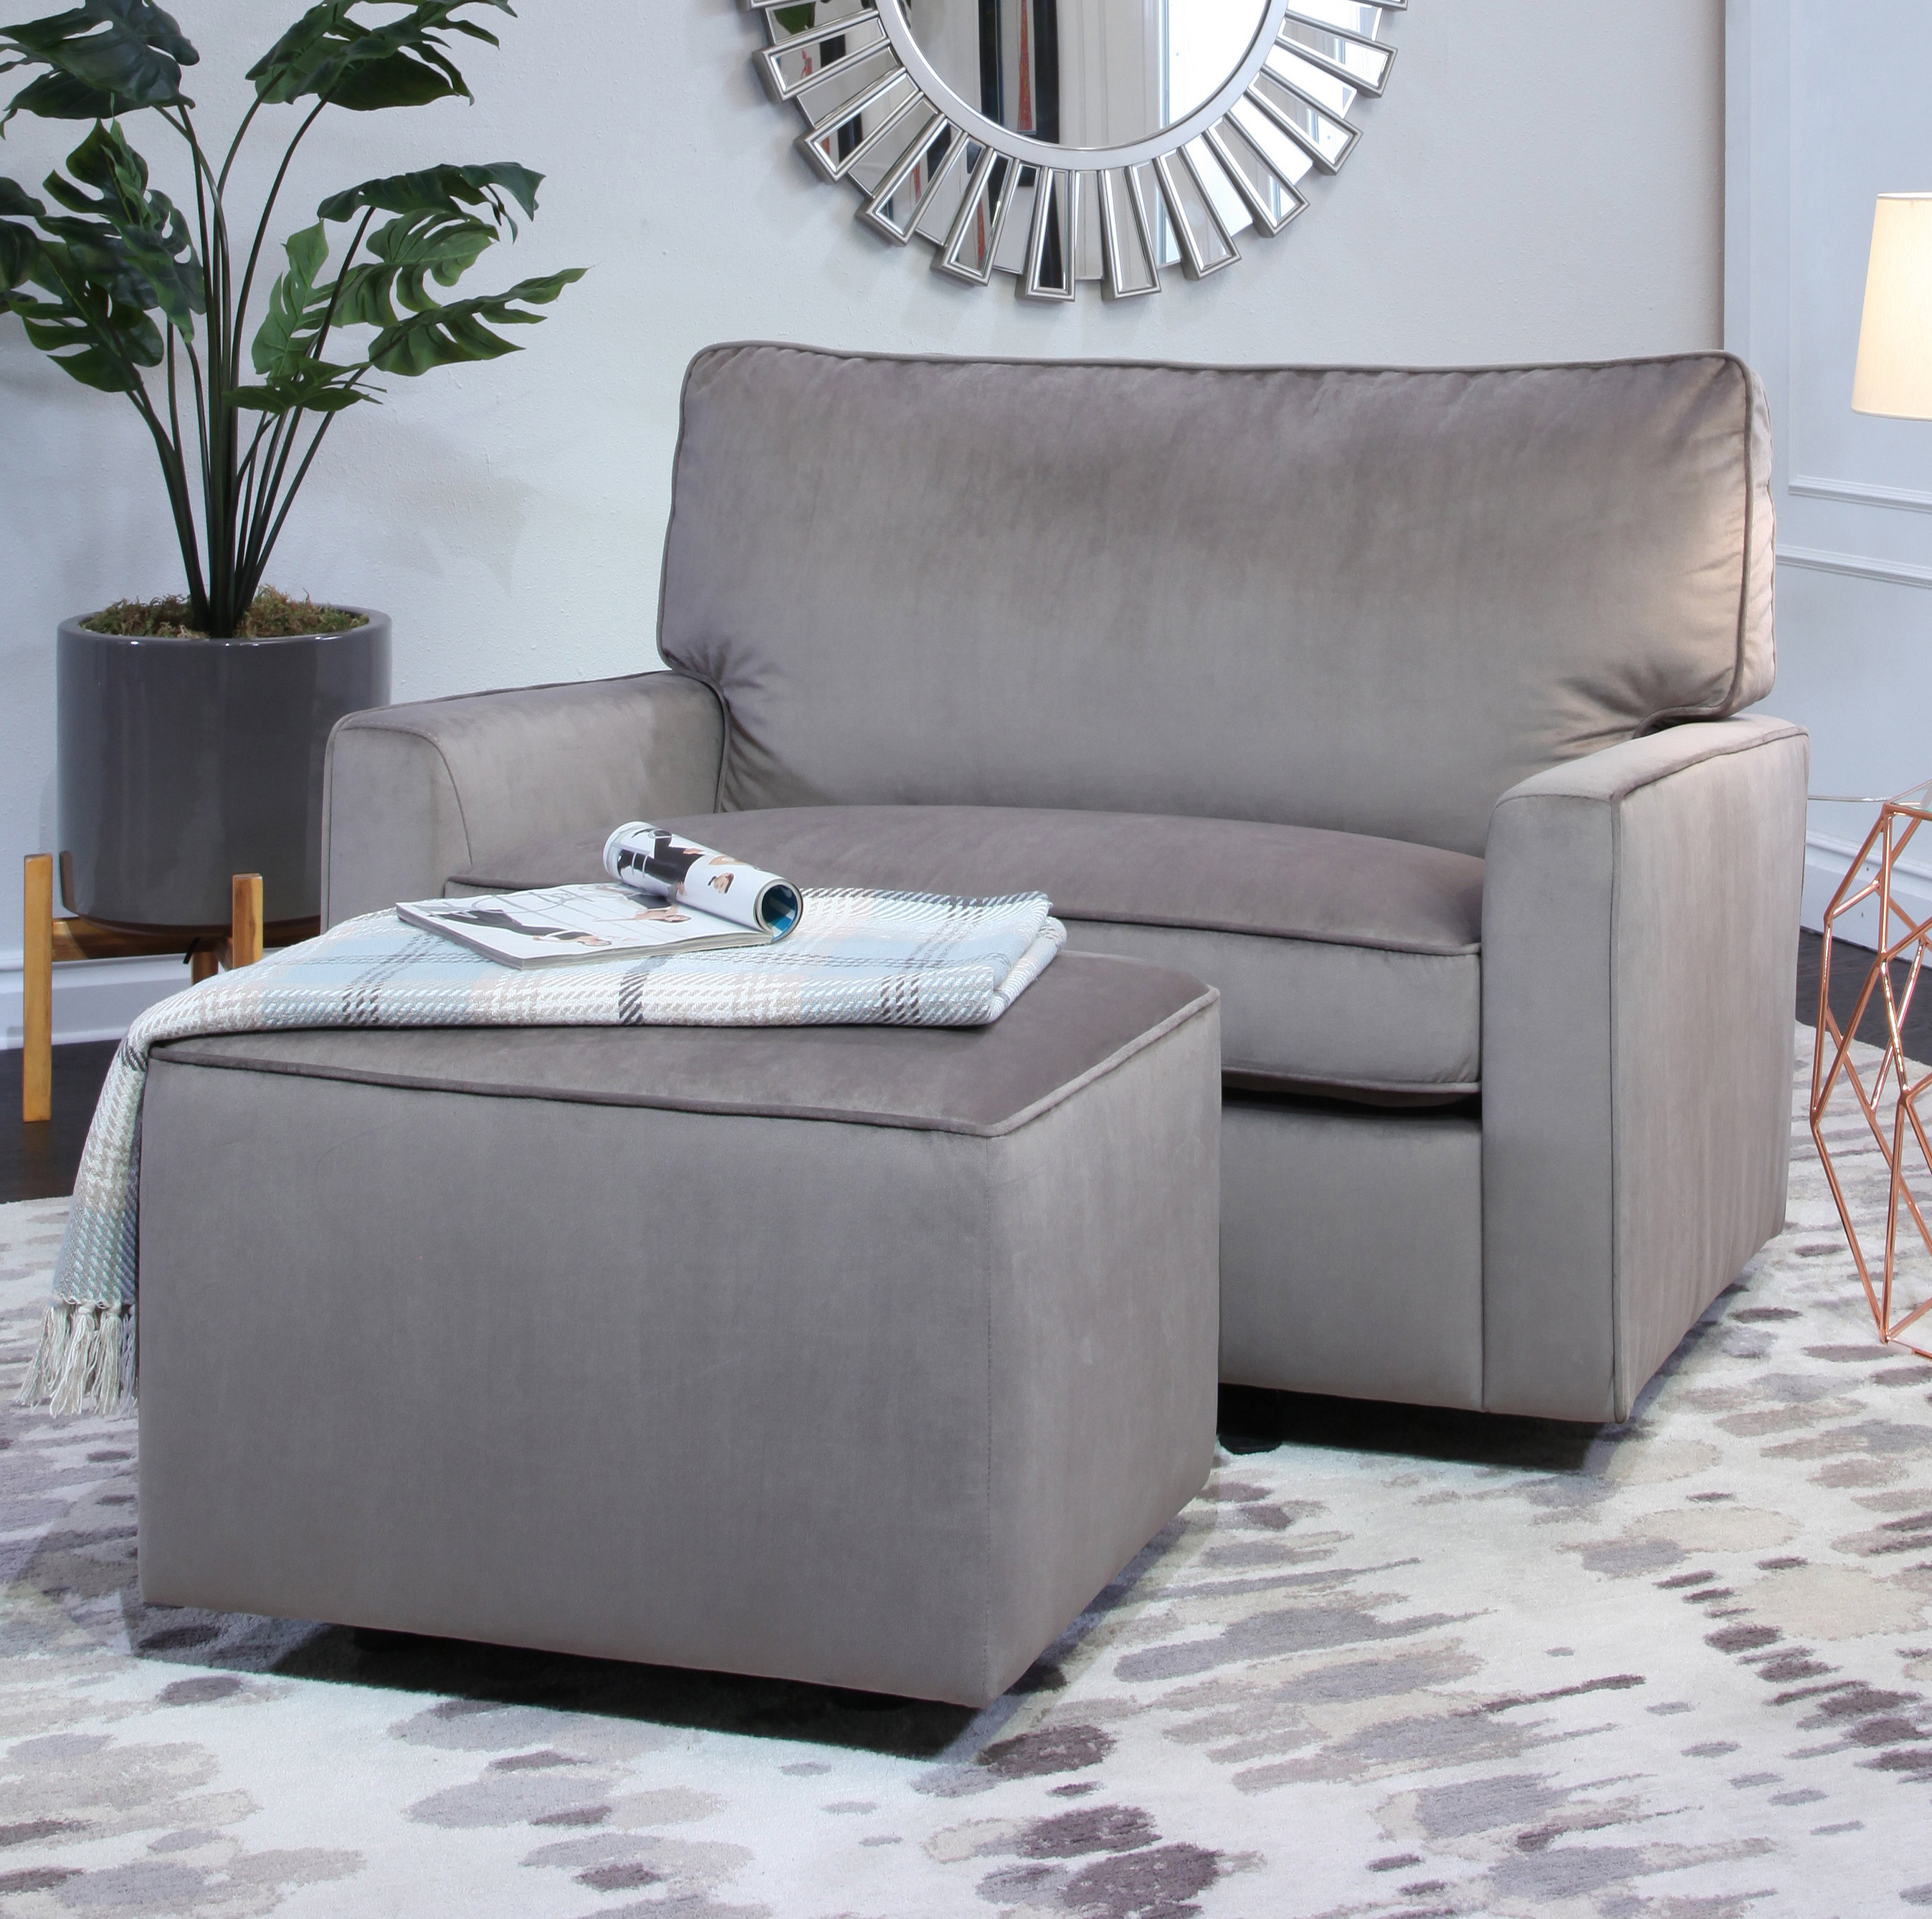 Harriet Bee Craner Oversized Glider Chair And Ottoman | Wayfair For Sheldon Oversized Sofa Chairs (Image 1 of 20)